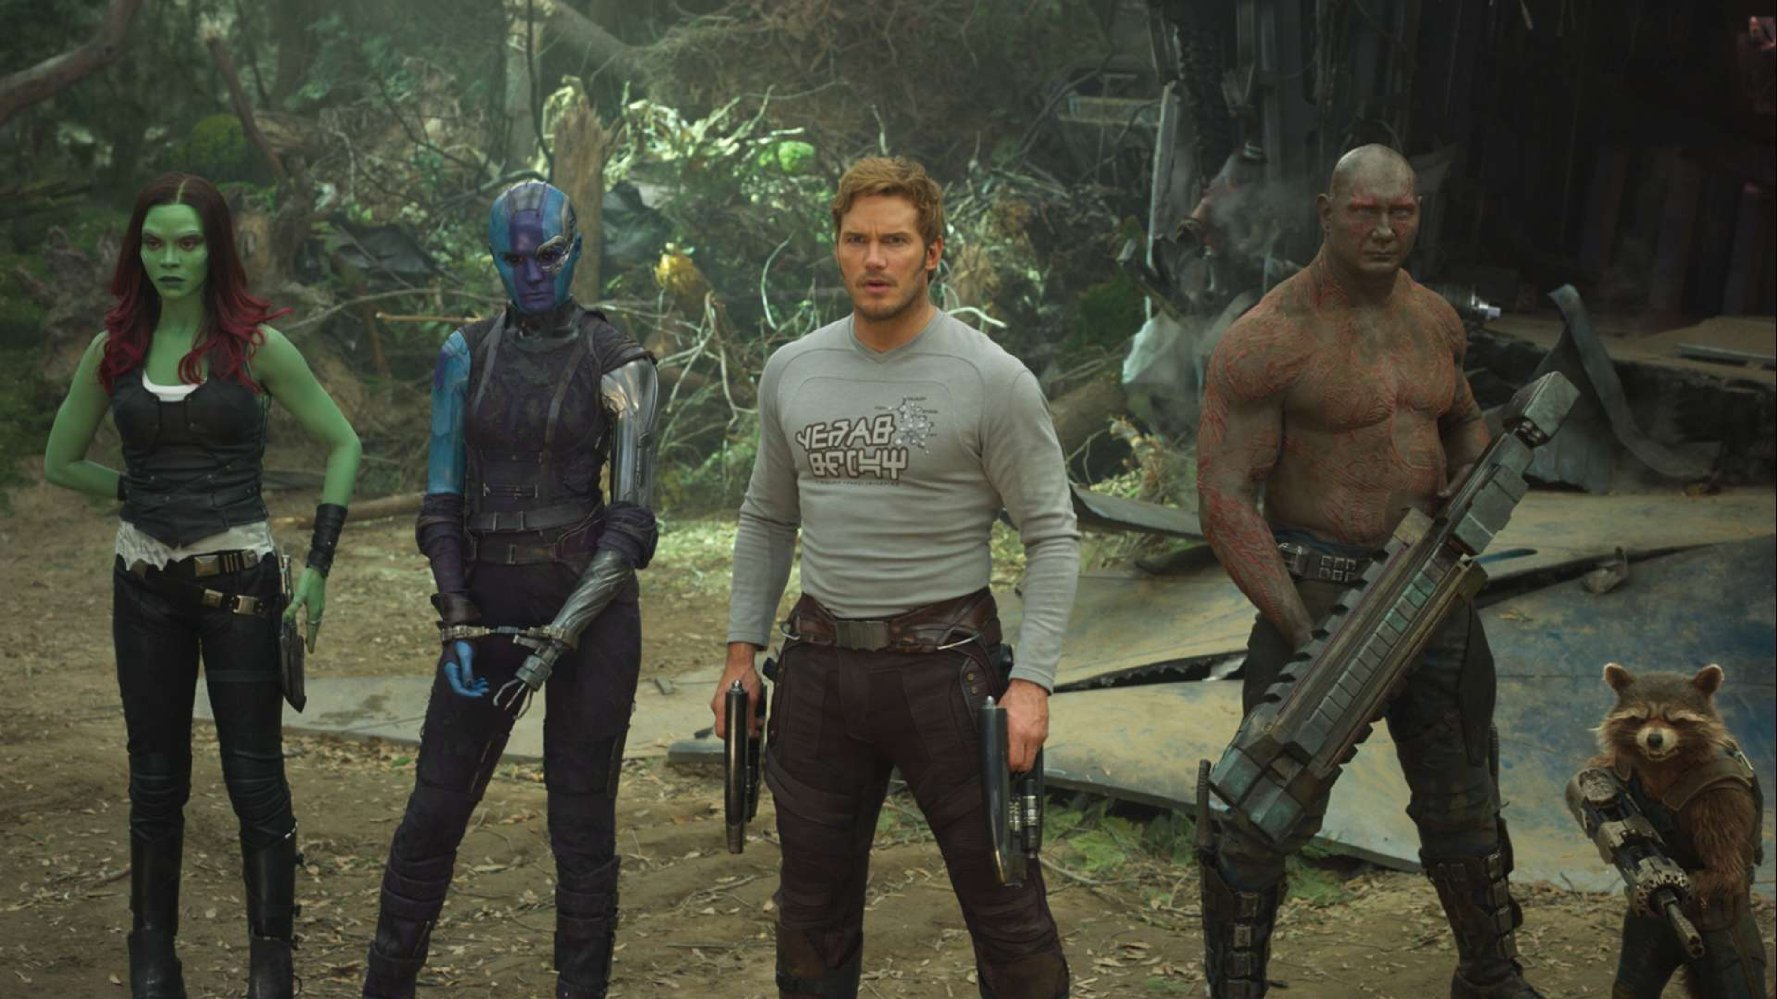 The Guardians of the Galaxy Vol. 2